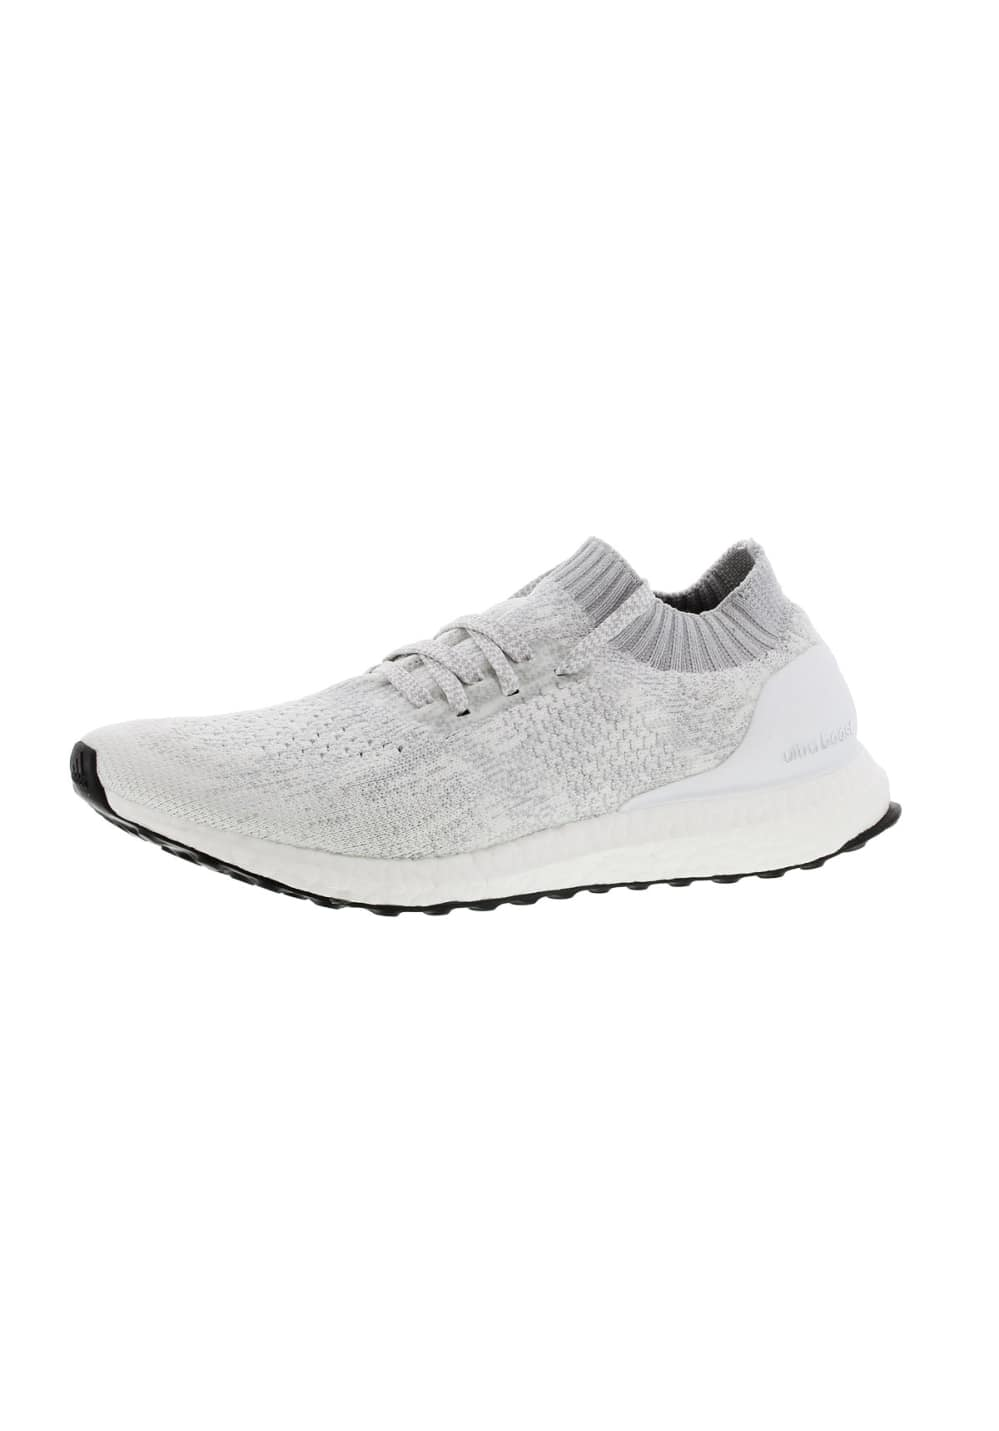 bba8f011 adidas Ultra Boost Uncaged - Running shoes for Men - White | 21RUN